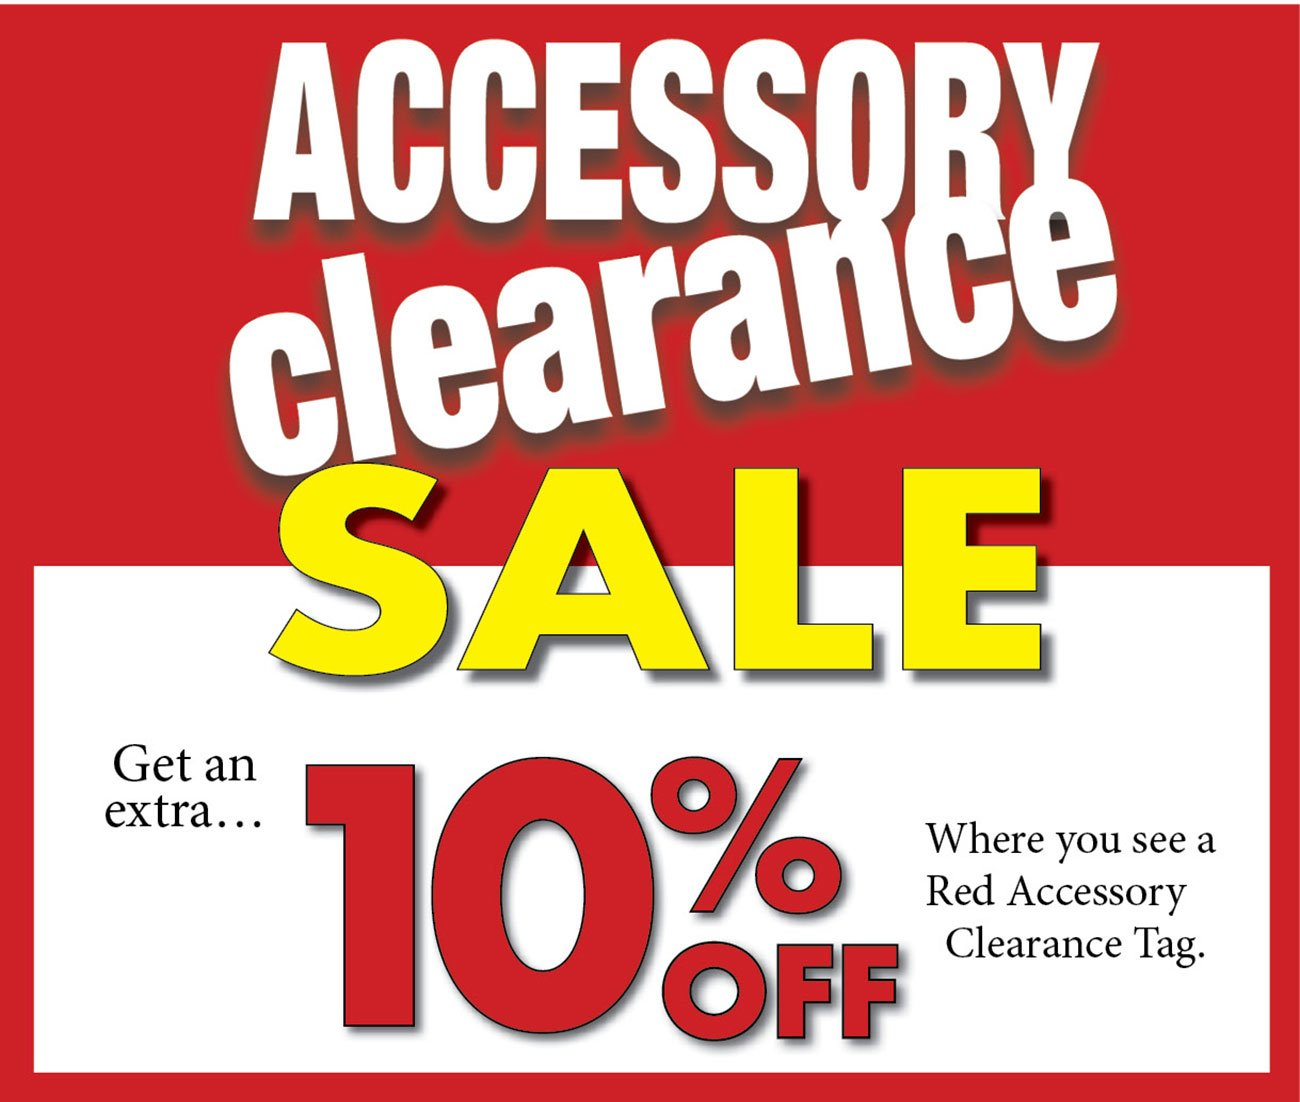 Accessory-clearance-sale